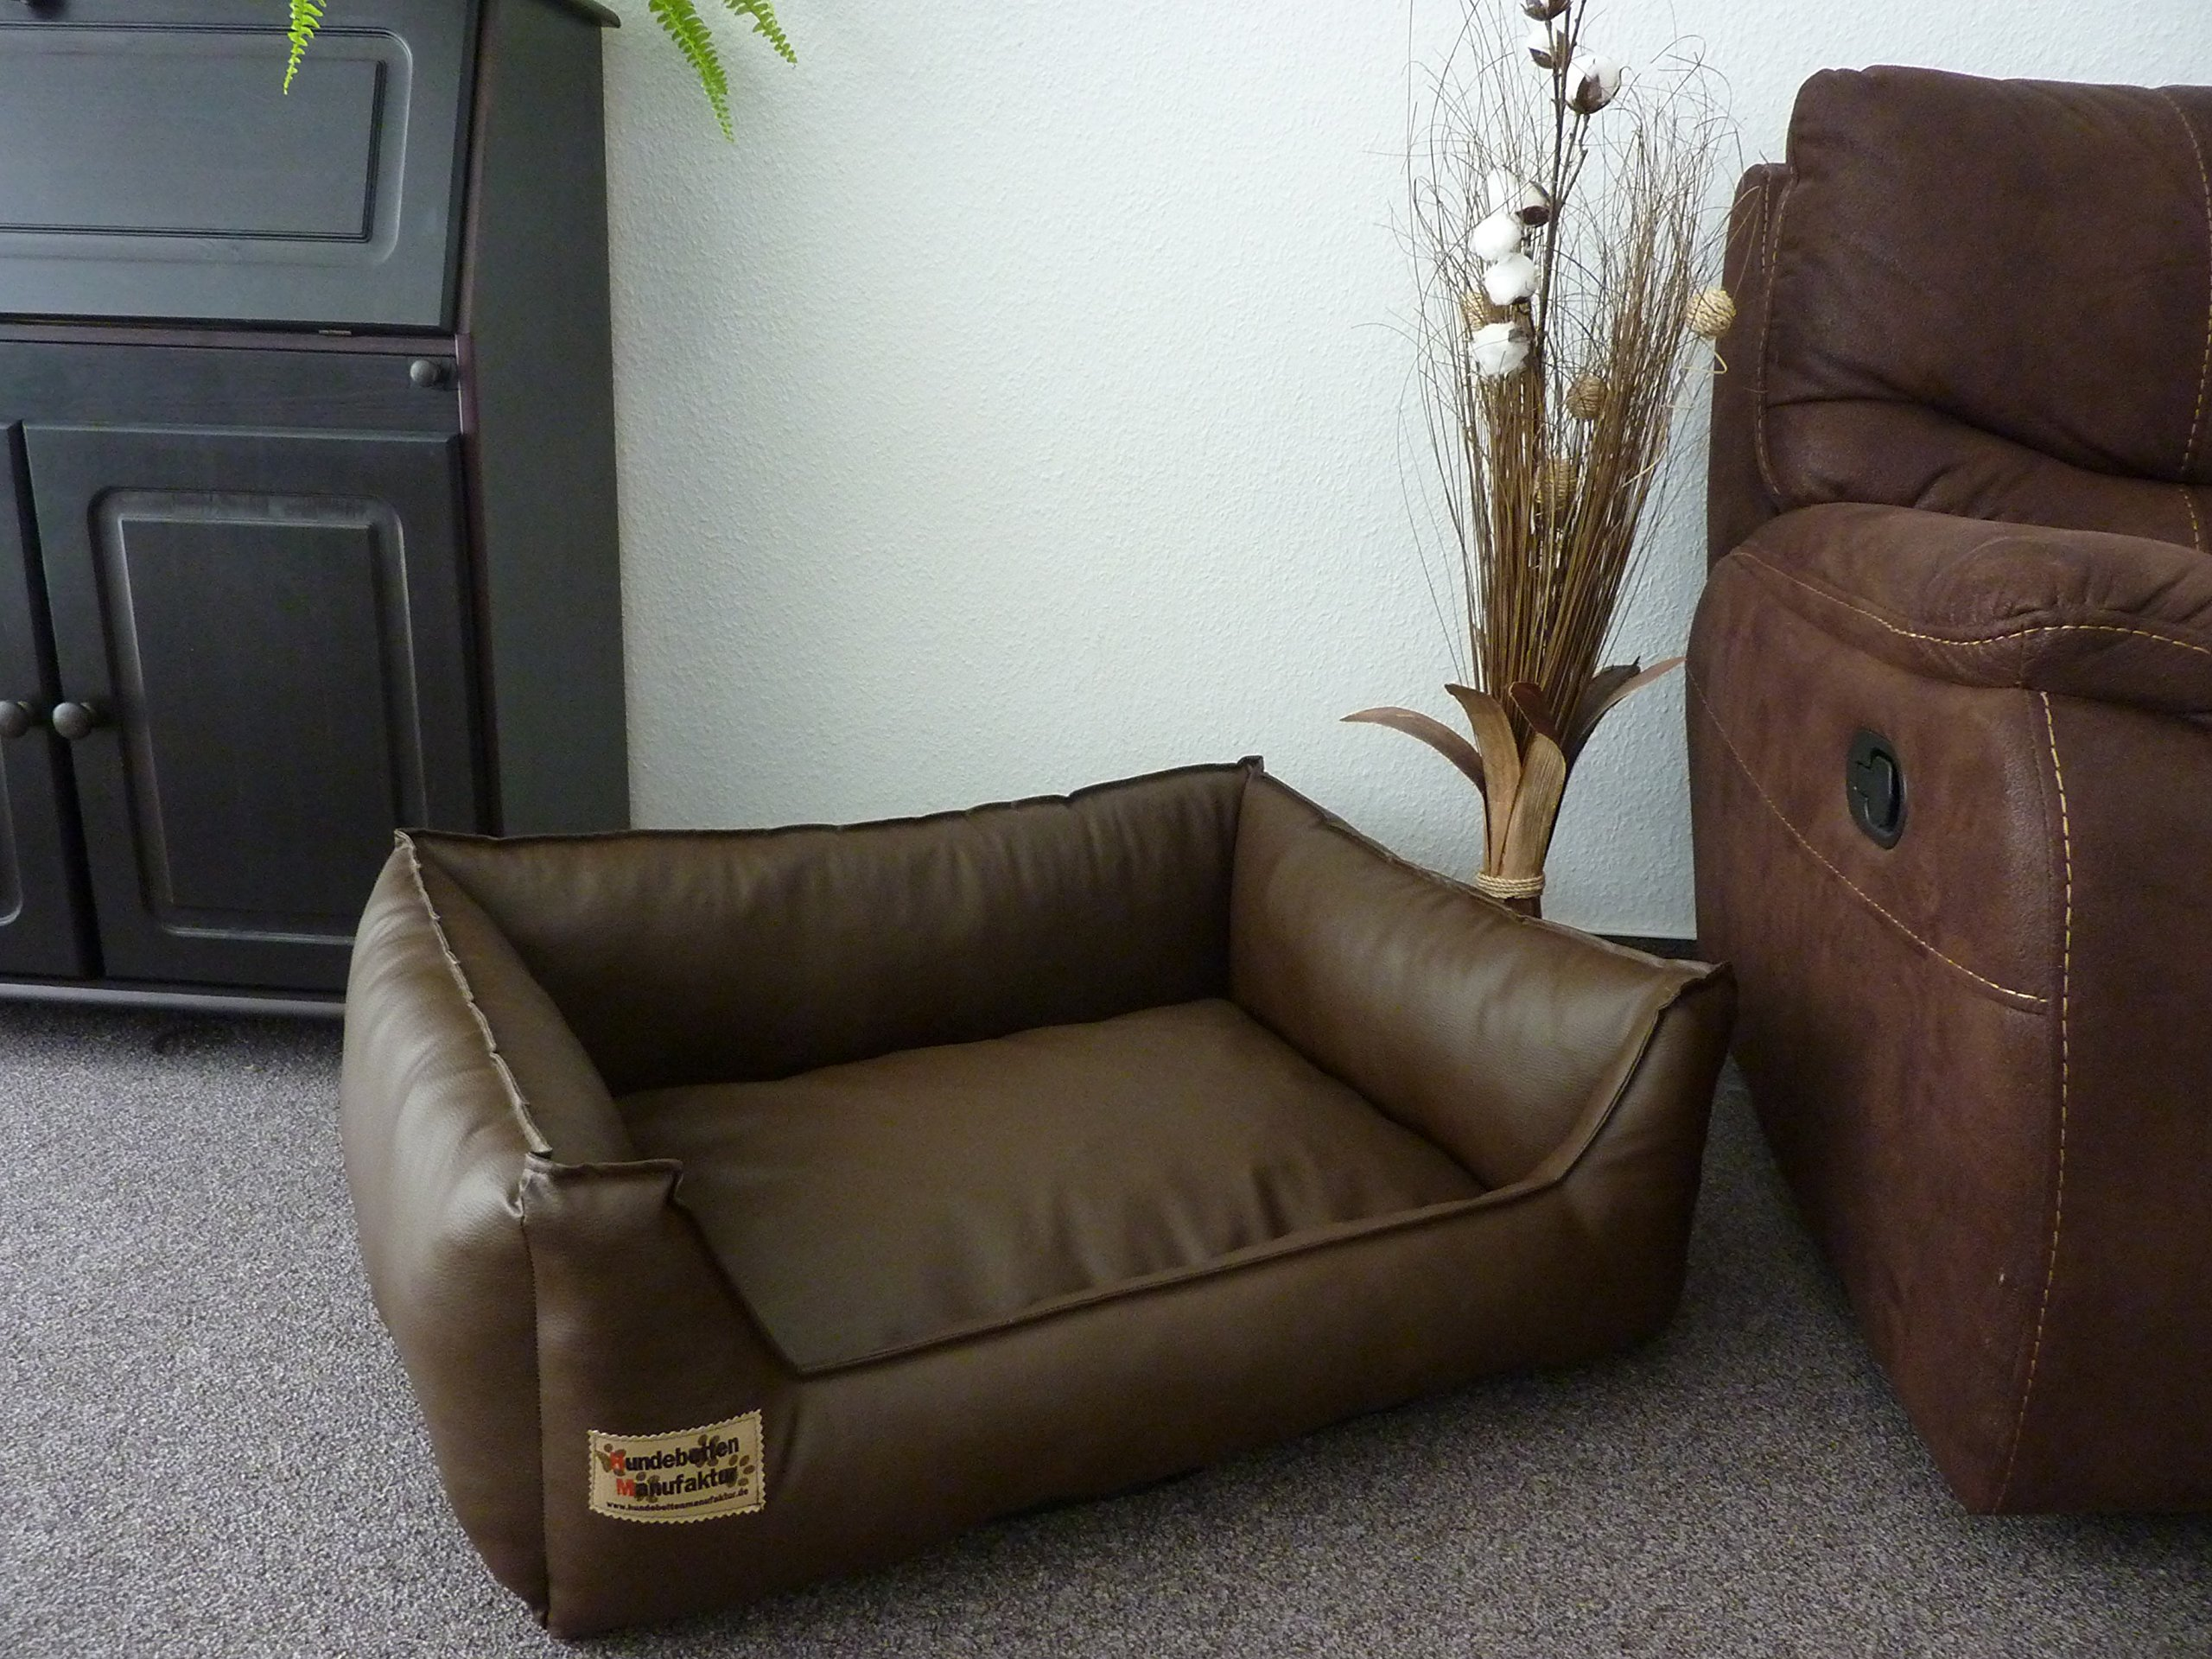 Similpelle Dog Bed/Sofa Artificial Leather 105 cm X 80 cm Brown